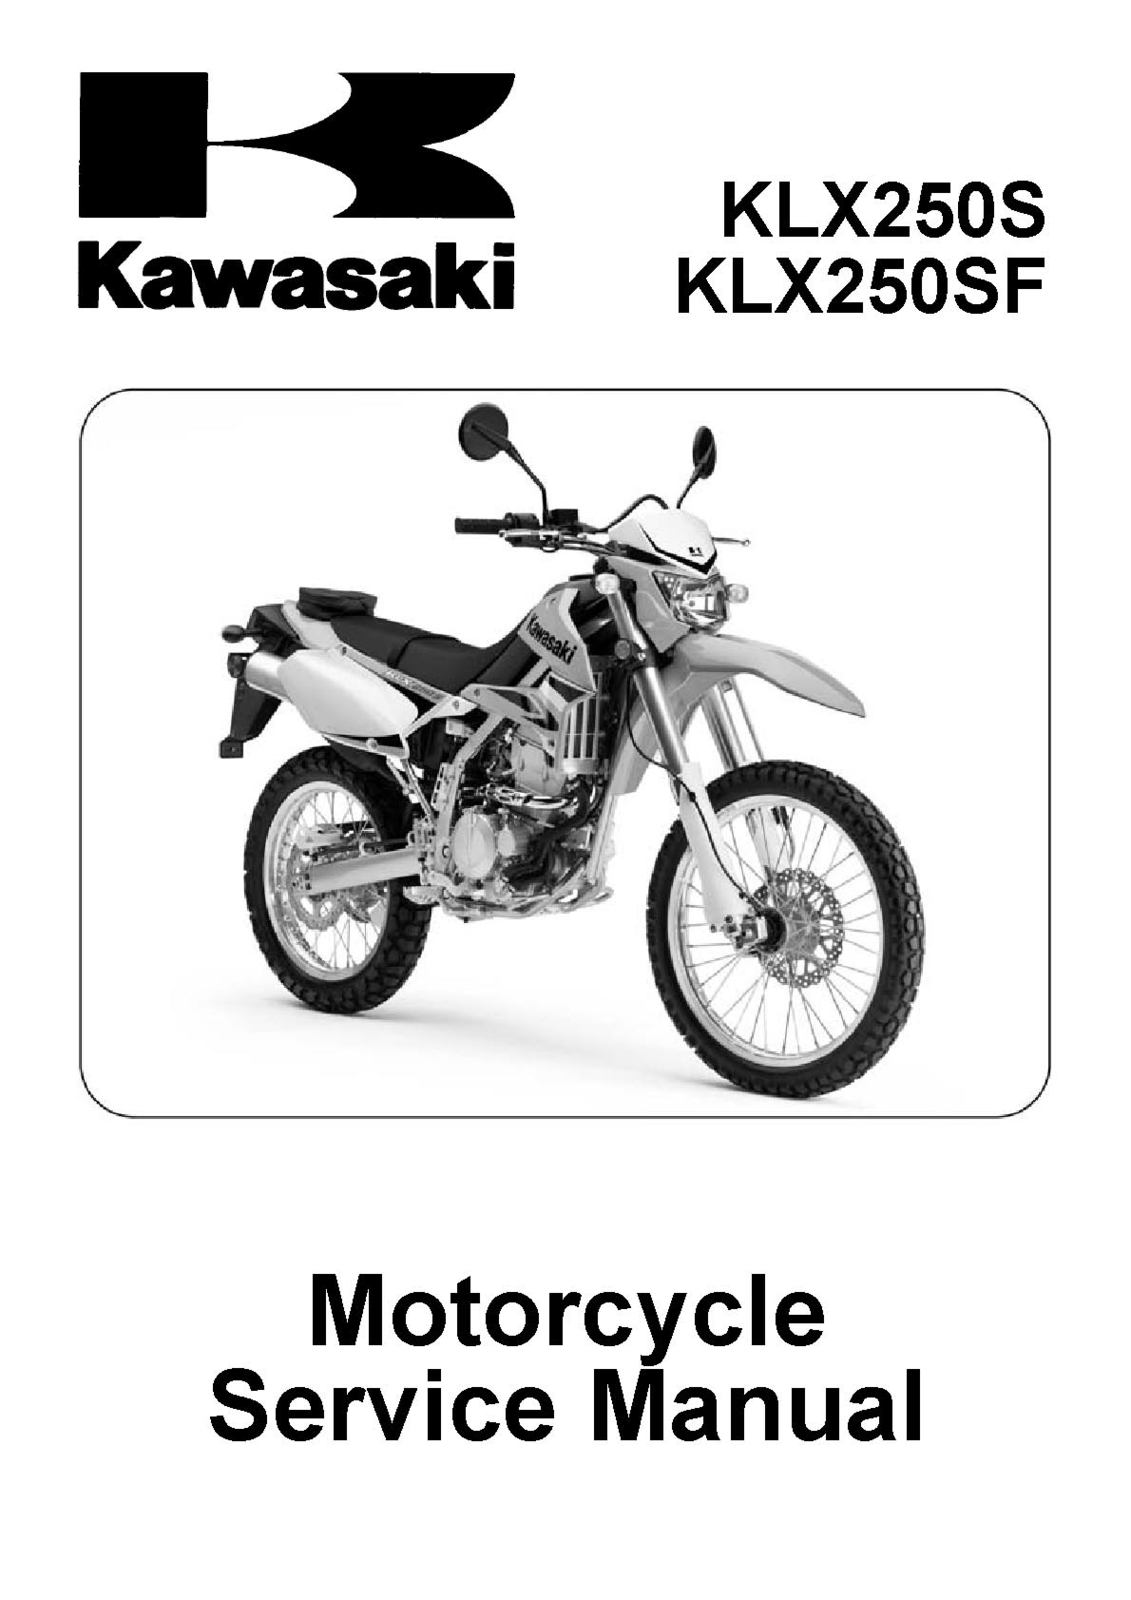 Kawasaki Klx110 Klx110 Full Service Repair Manual 2002